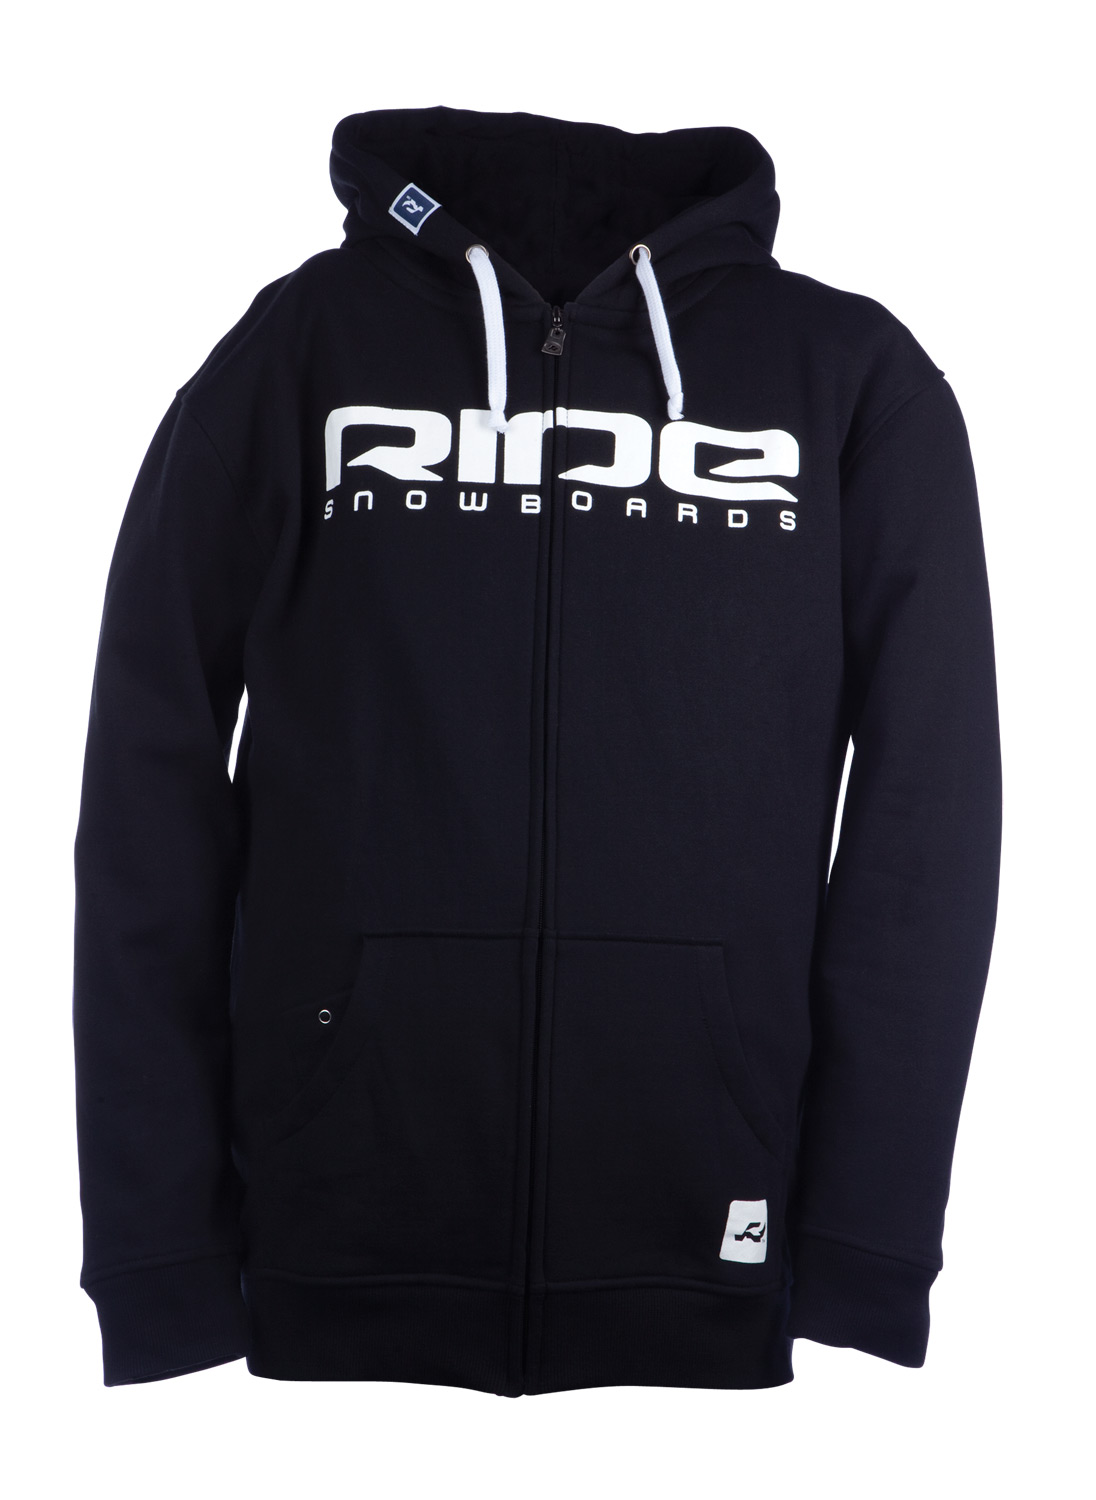 Guns and Military Key Features of the Ride Logo Full Zip Hoodie: 280g, 80% Cotton / 20% Polyester - $48.95